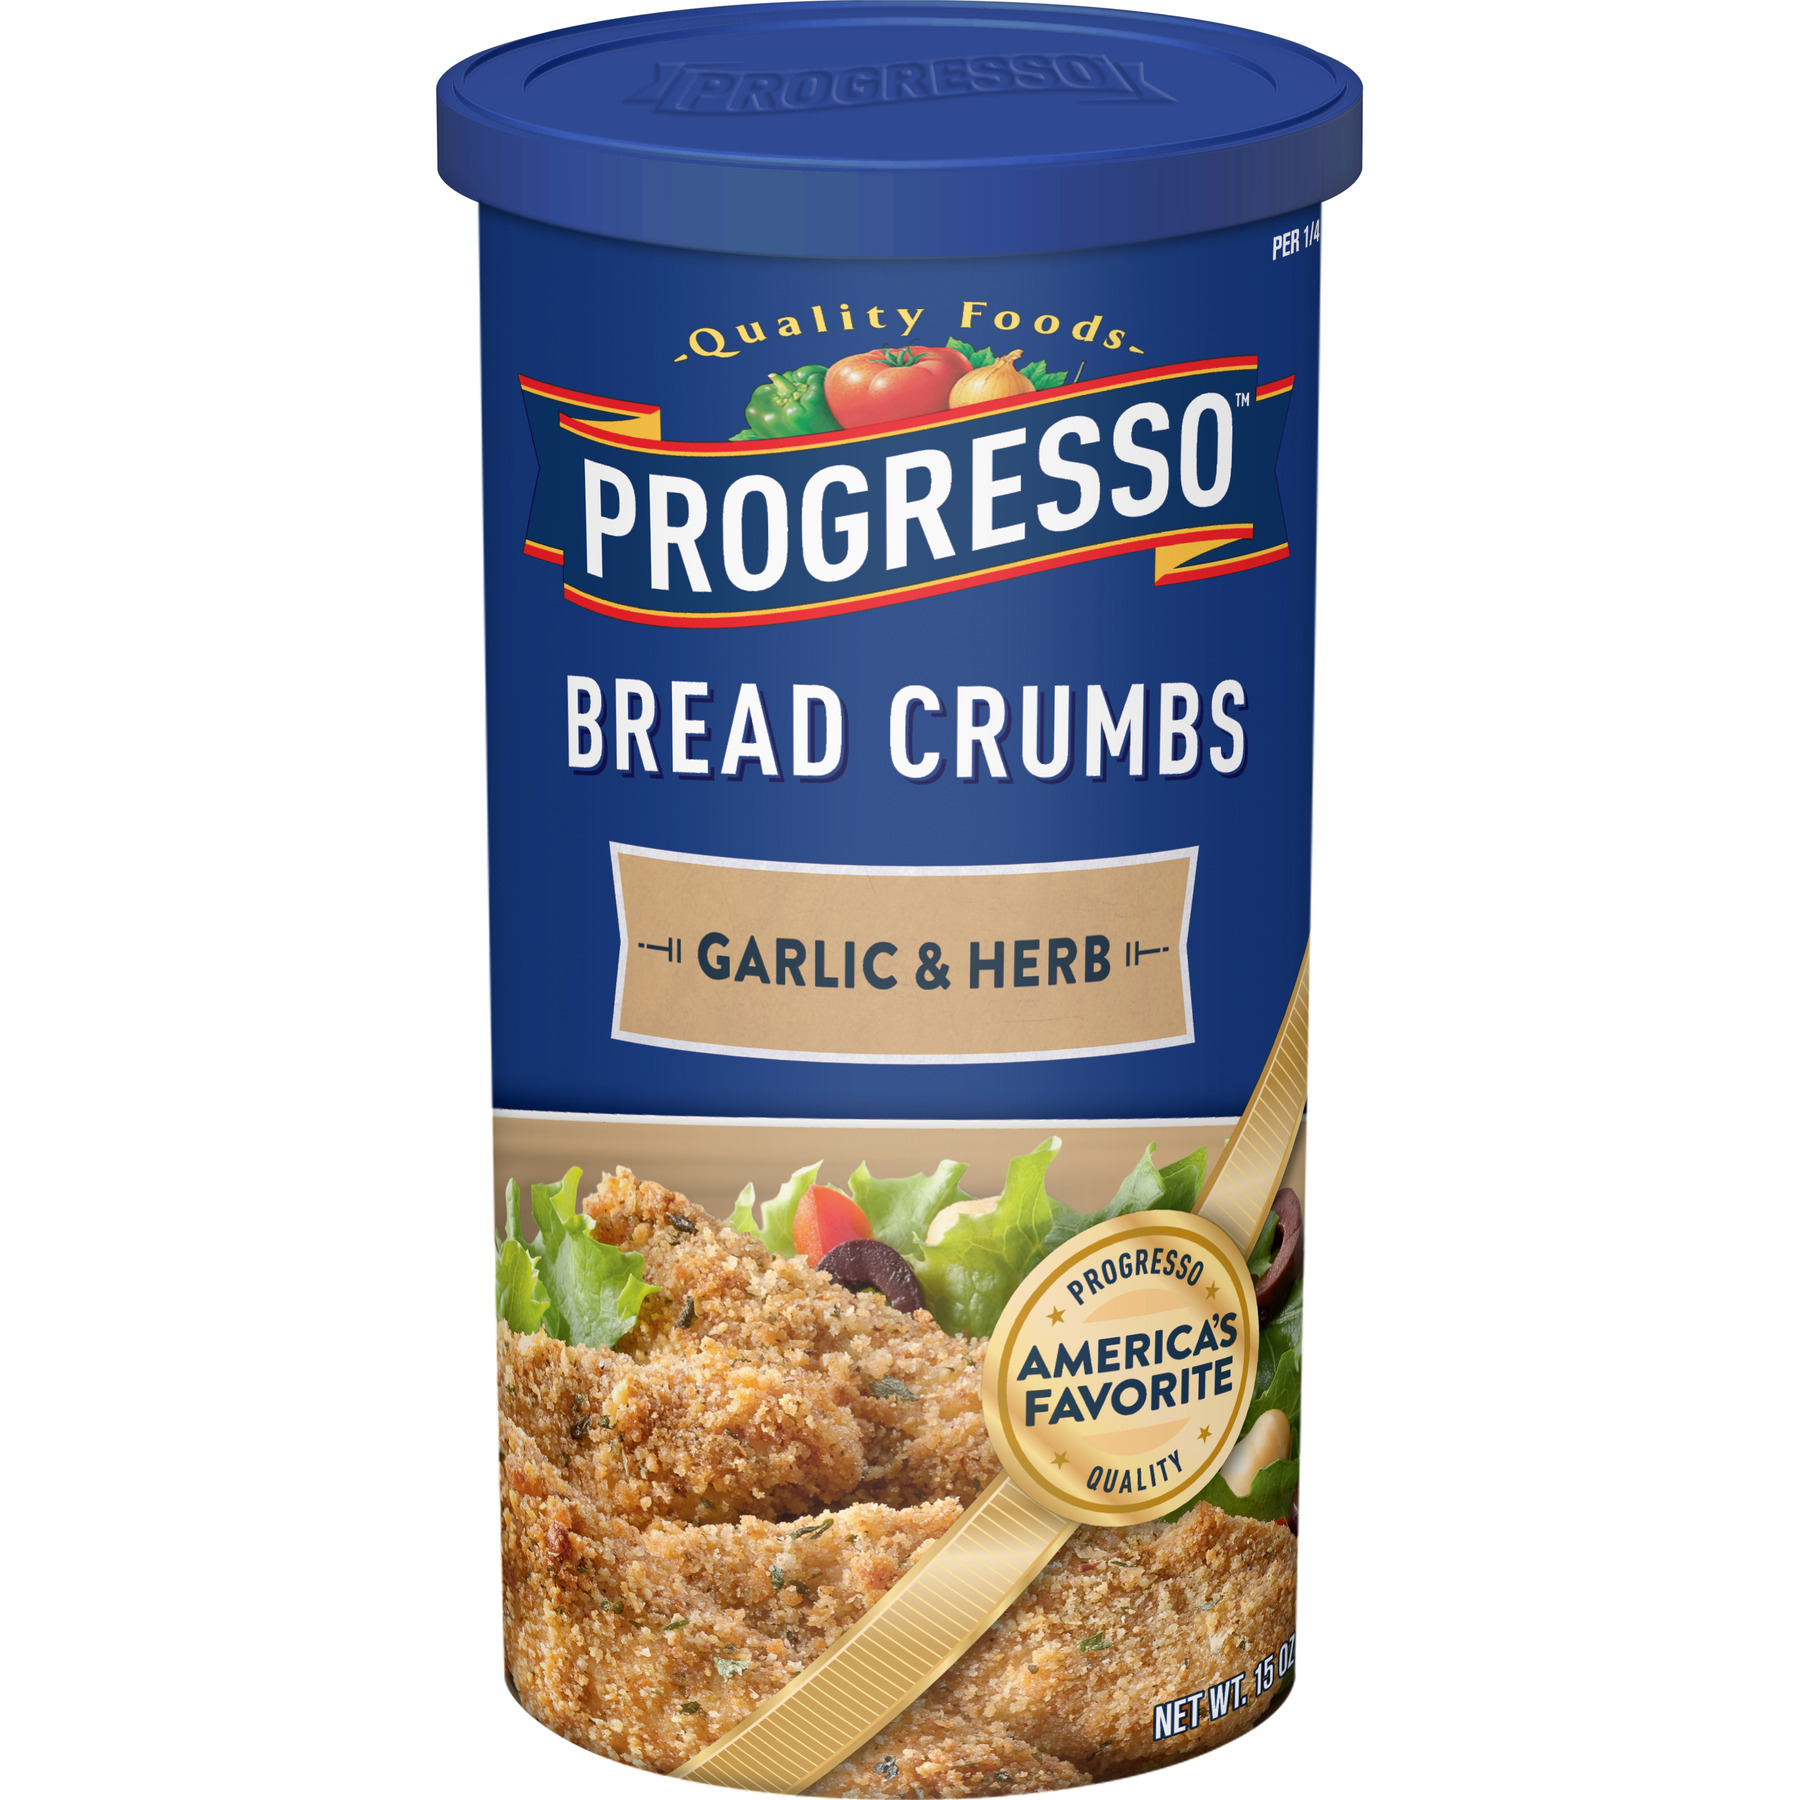 Progresso Garlic and Herb Bread Crumbs, 15 oz